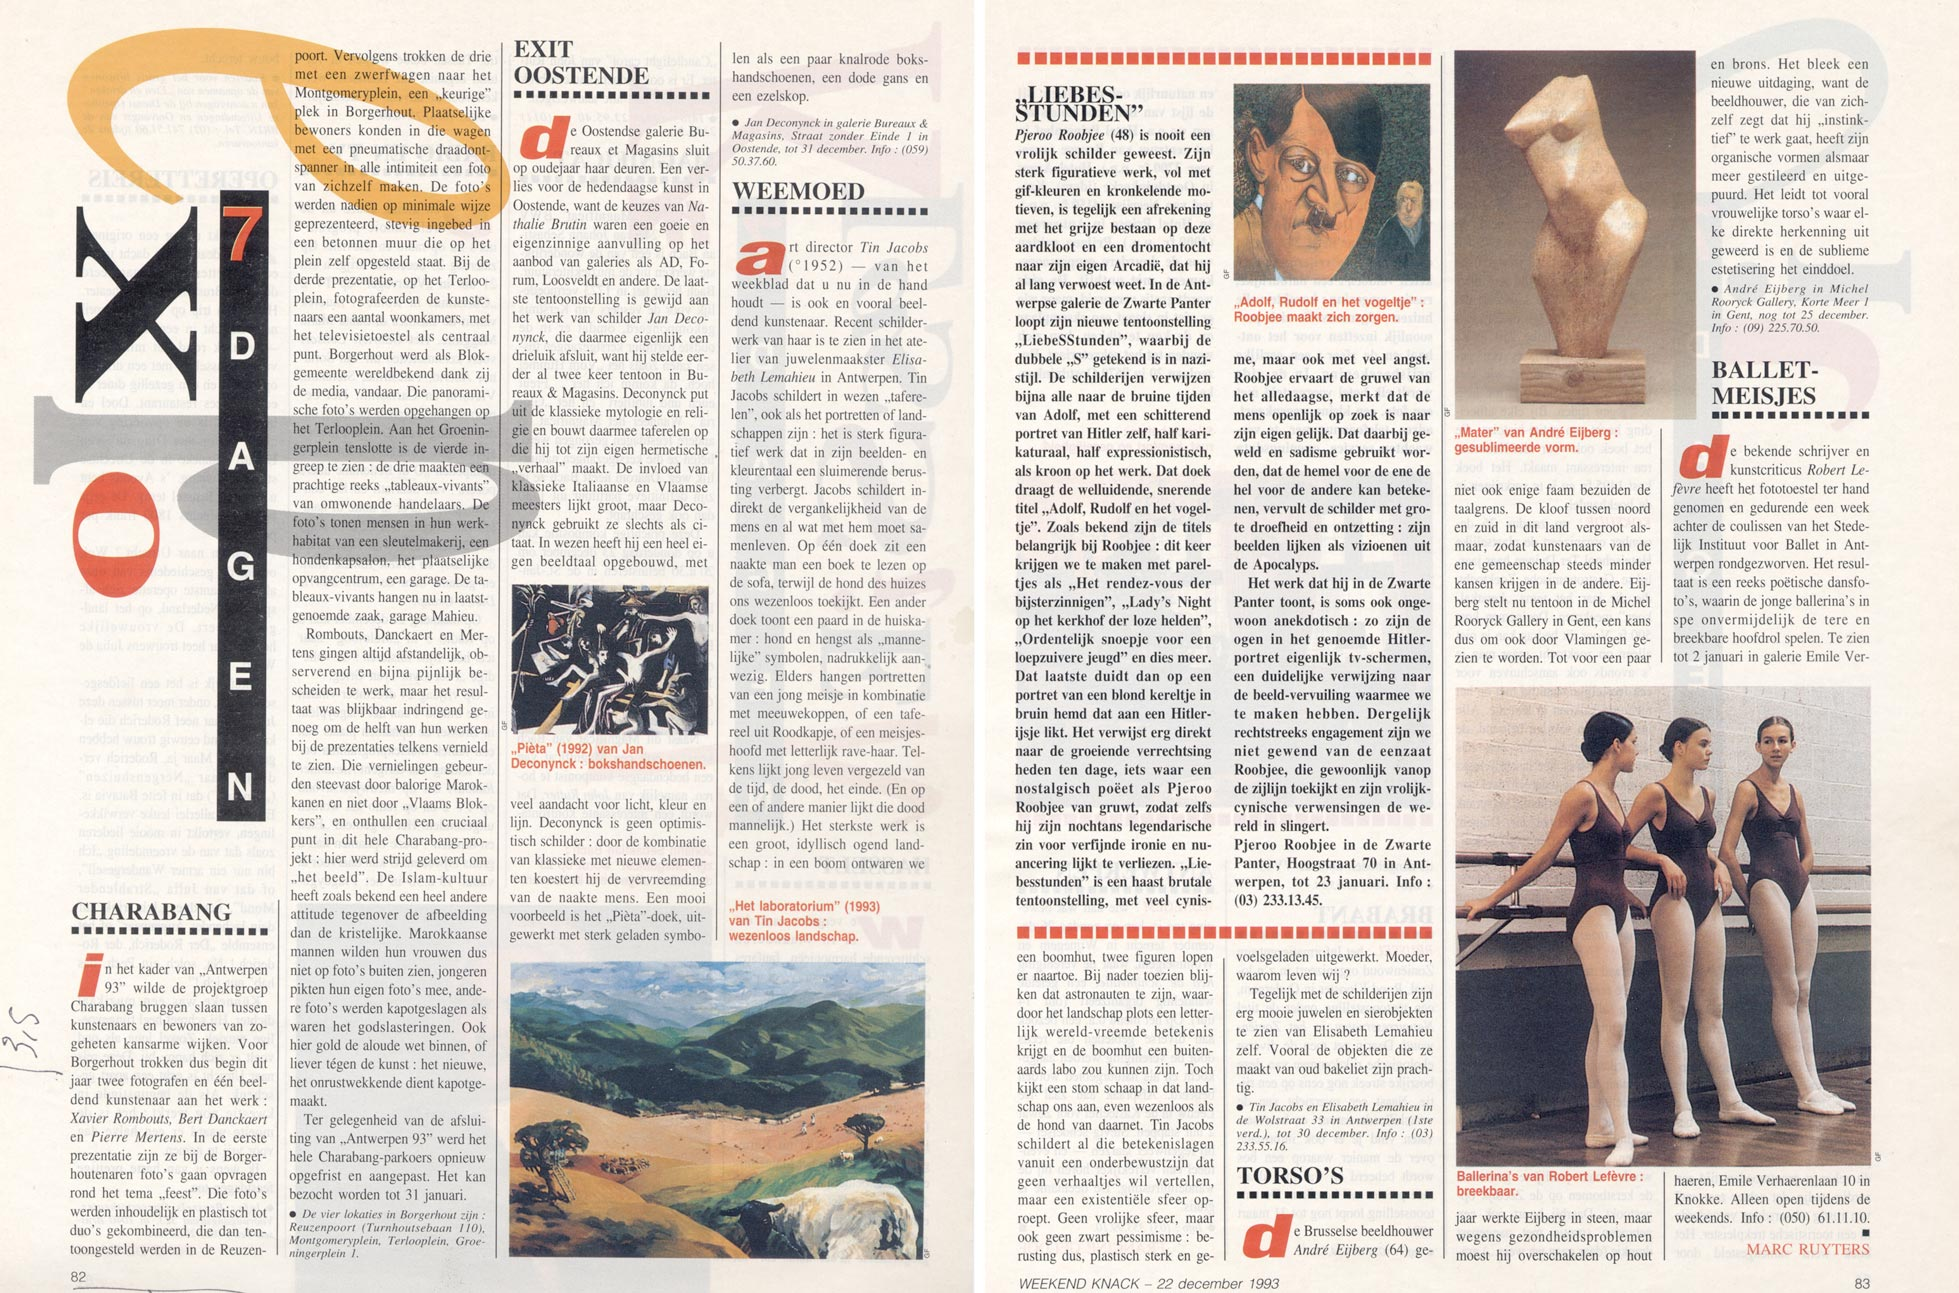 1993.publ.1.melancholy.knackw.marcruyters